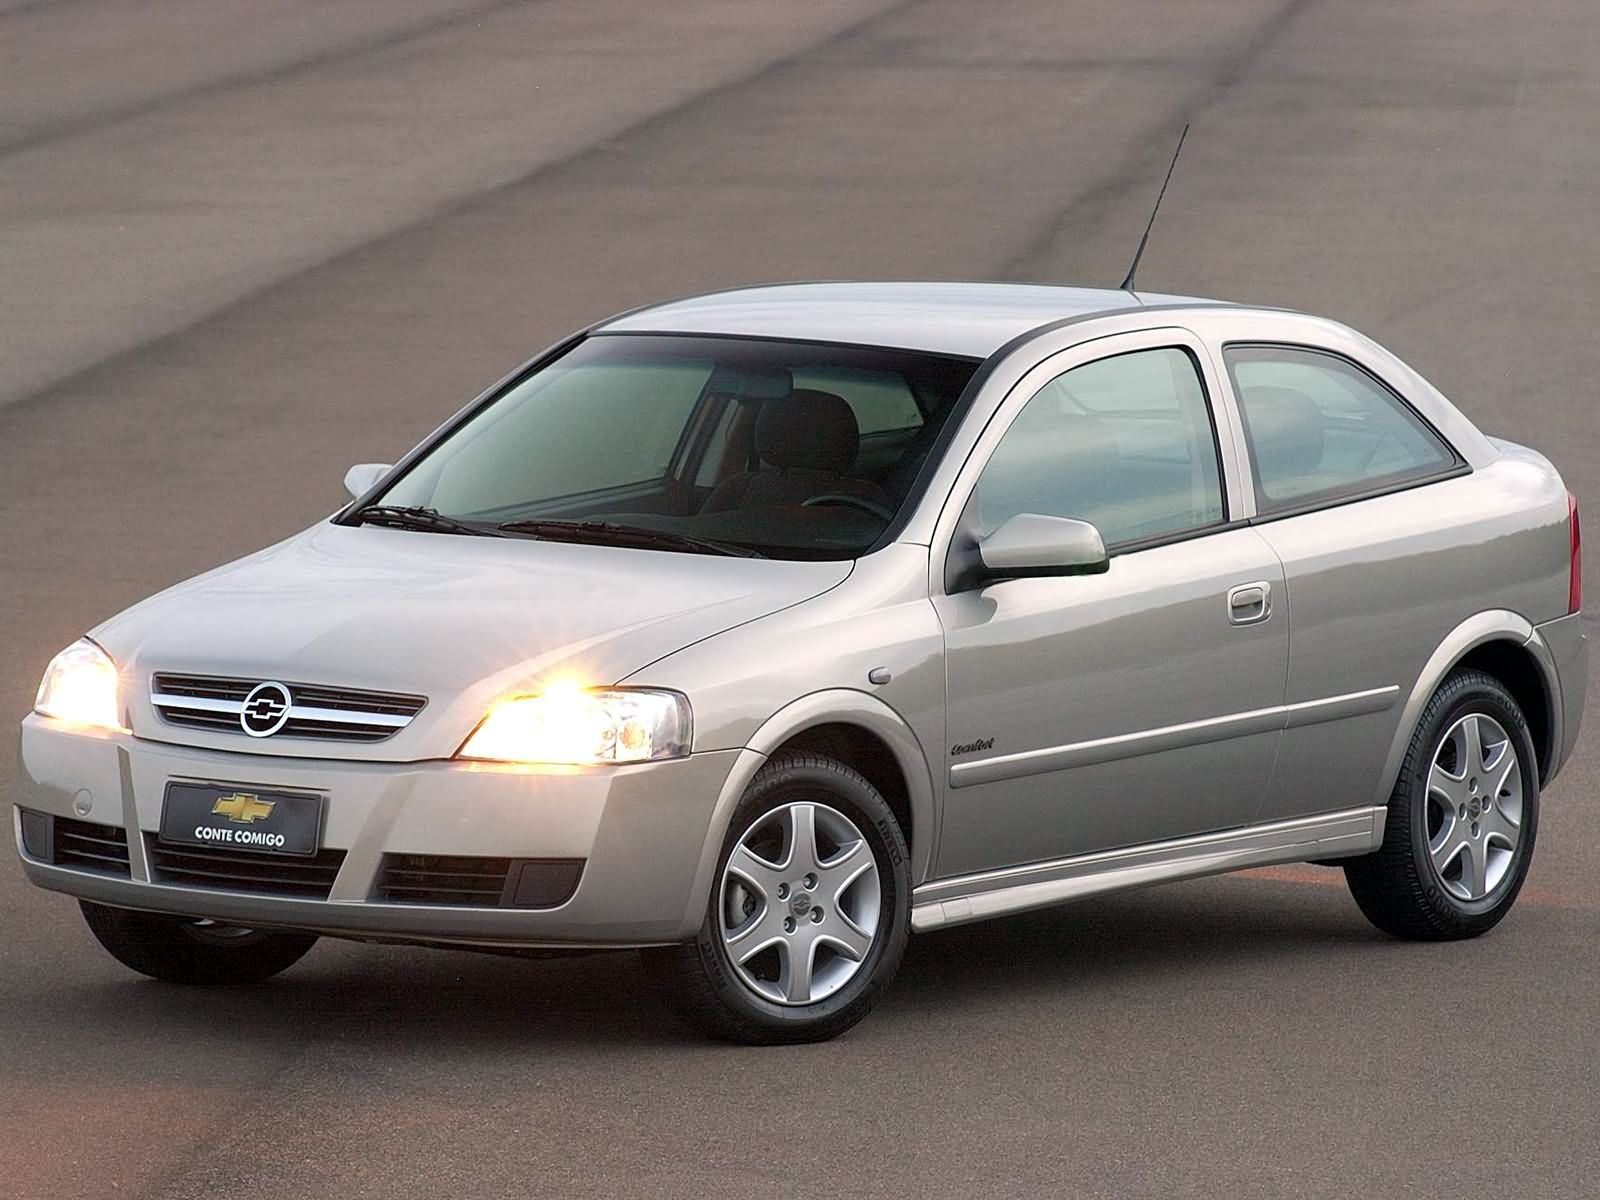 Chevrolet Astra photo 7609